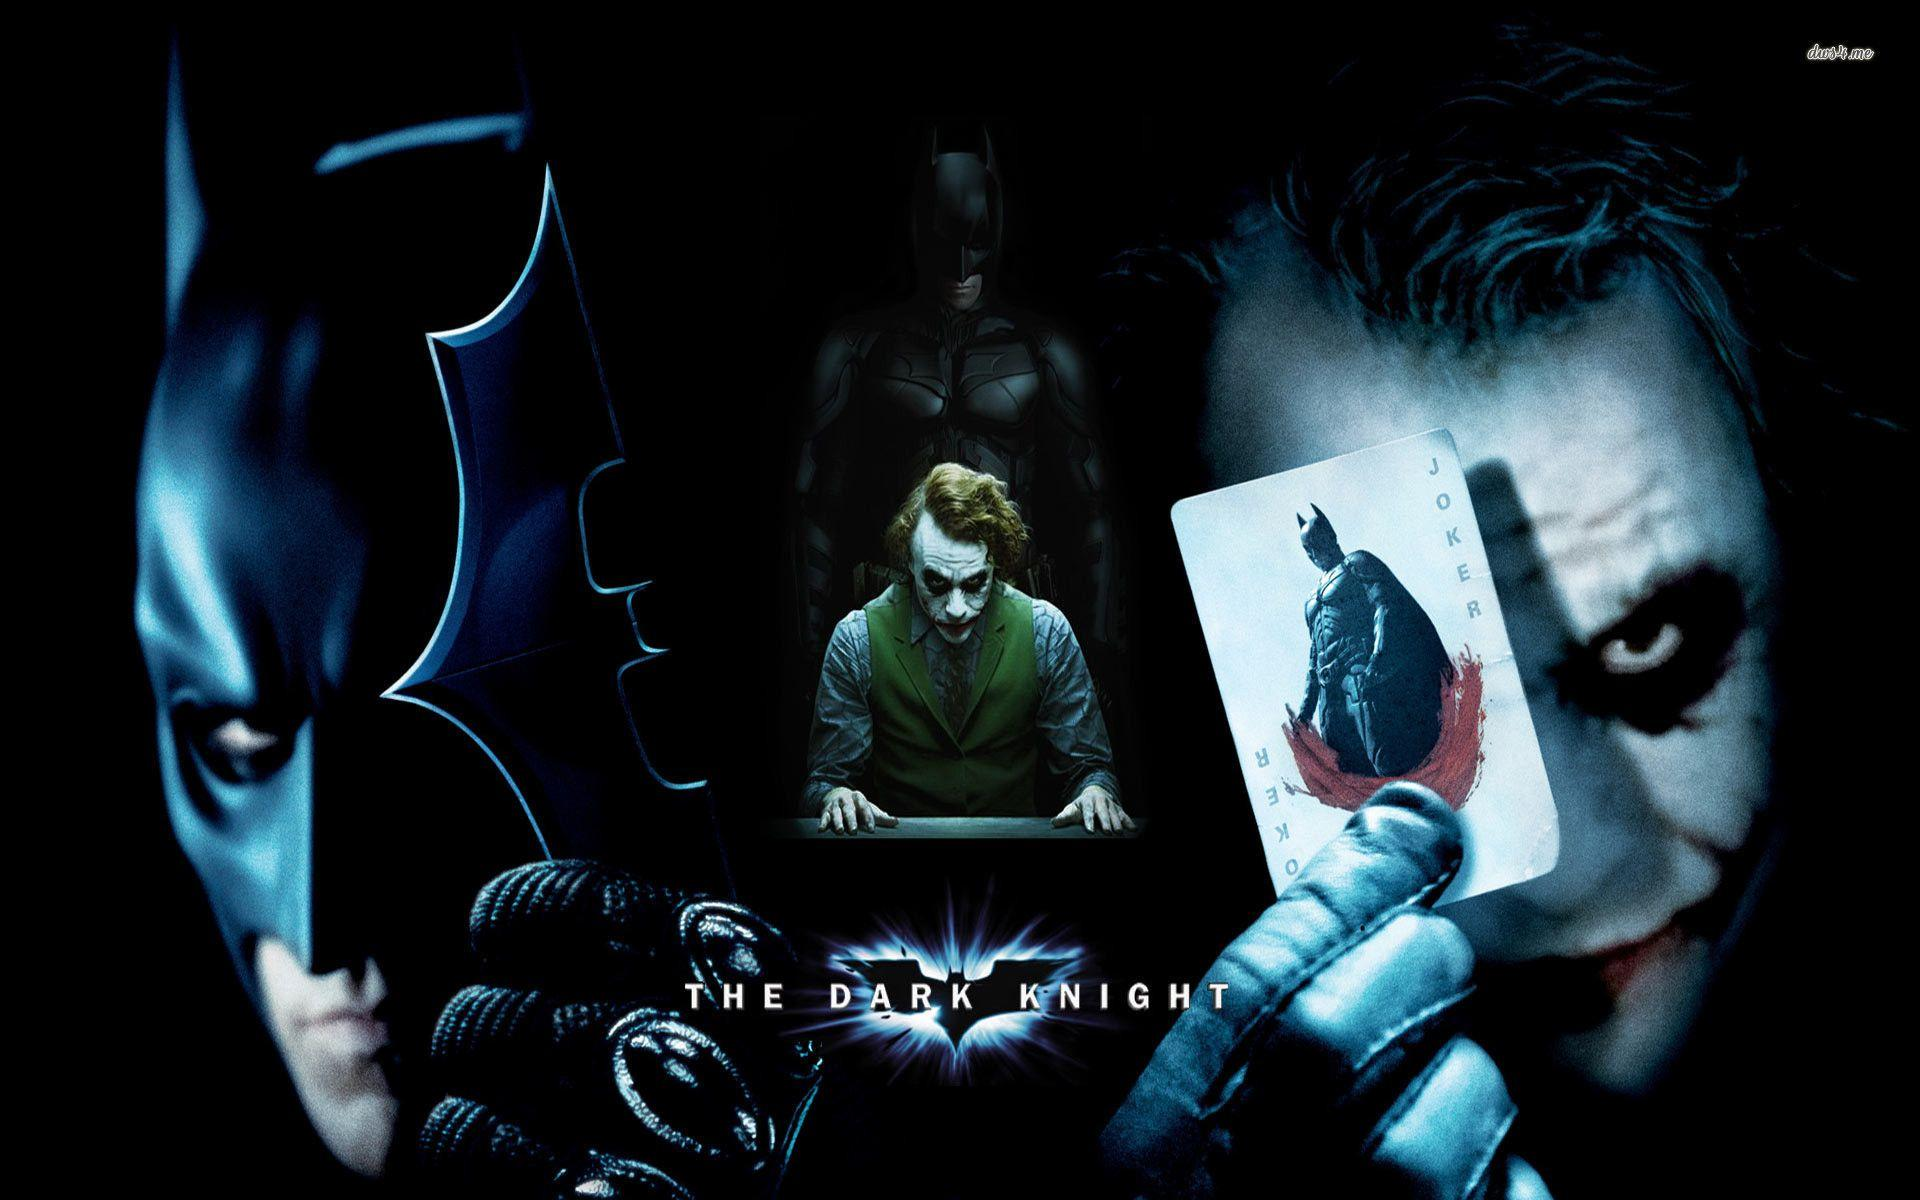 Wallpapers Dark Knight - Wallpaper Cave